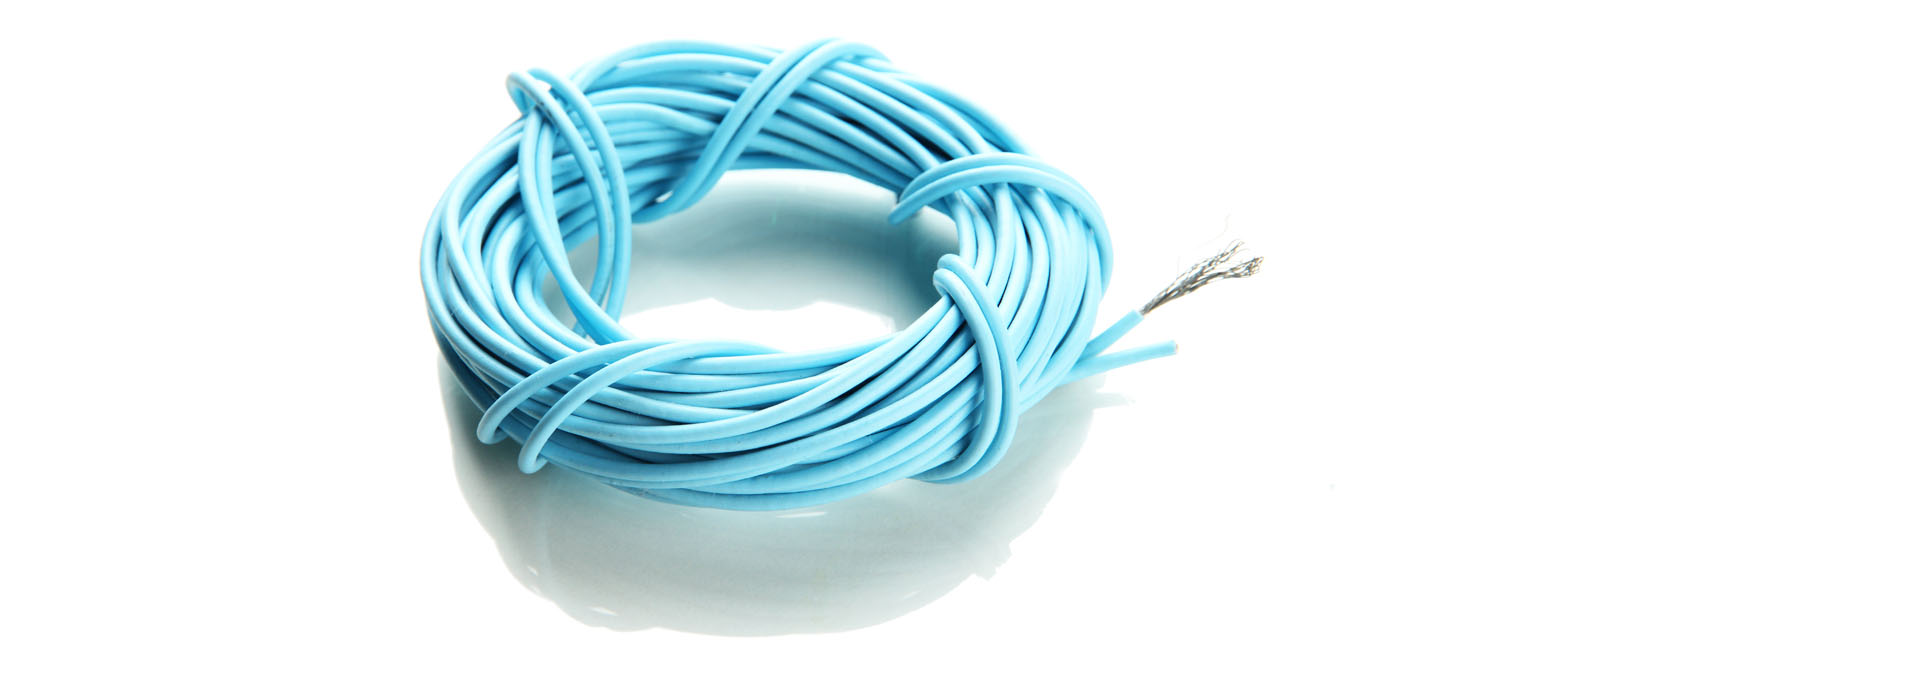 Electrical Cablepower Cablesindustrial Cables Manufacturers In India House Wiring Ethernet Connection Productcatalog Download Now